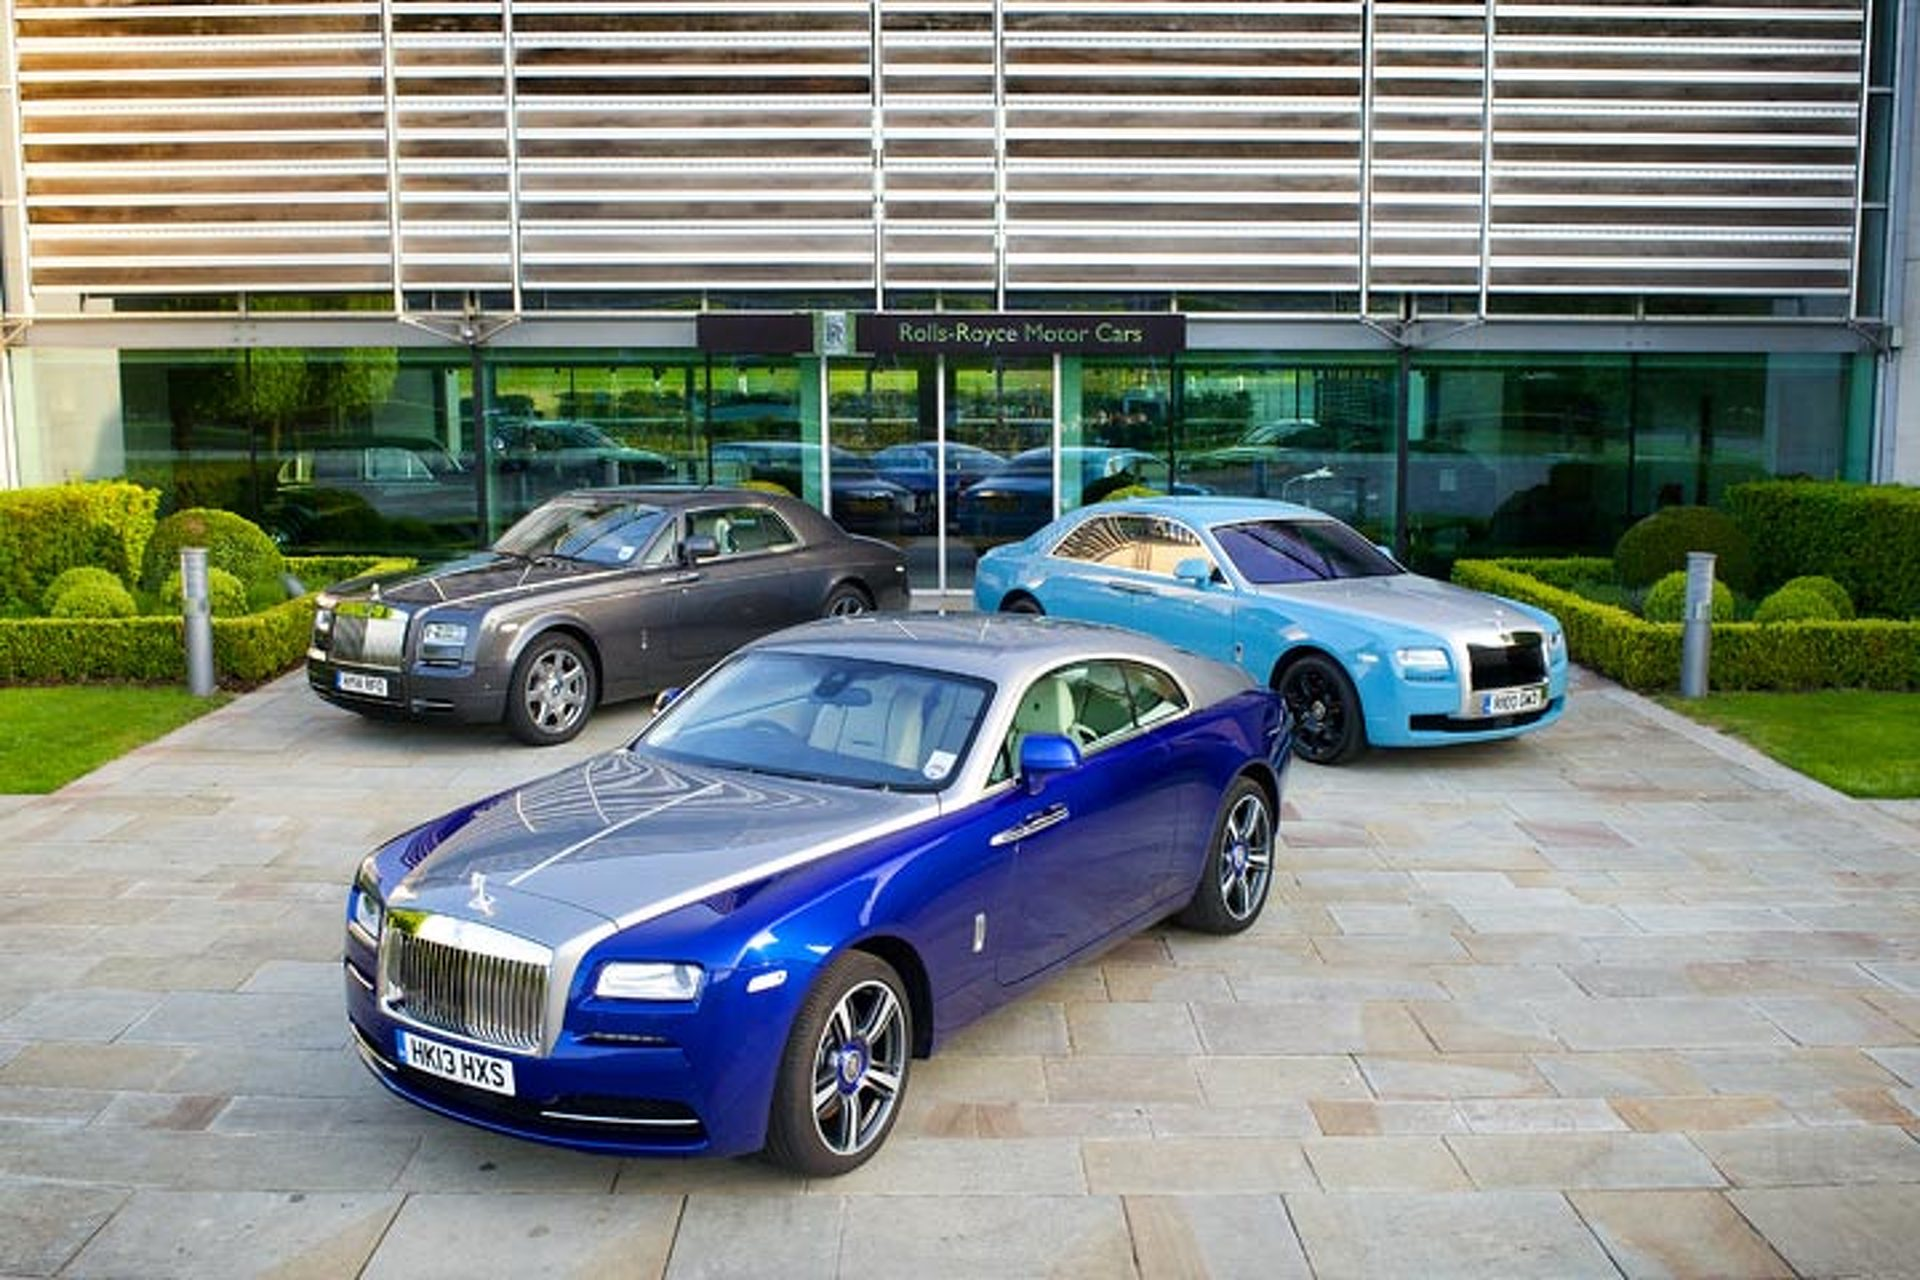 Rolls-Royce SUV Hitting the Market in 2017